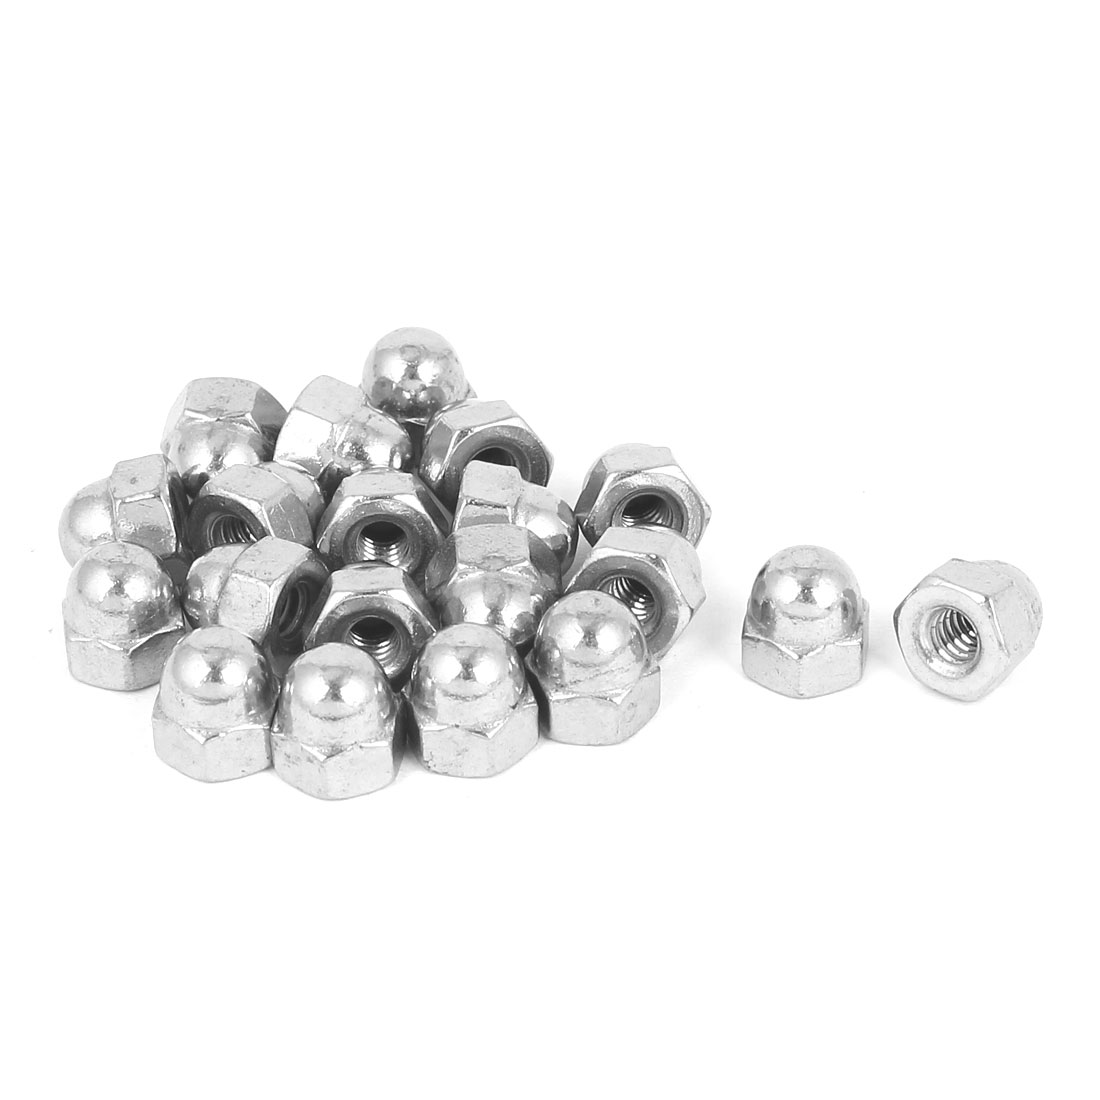 10#-24 304 Stainless Steel Dome Head Cap Hexagon Nuts Silver Tone 20pcs